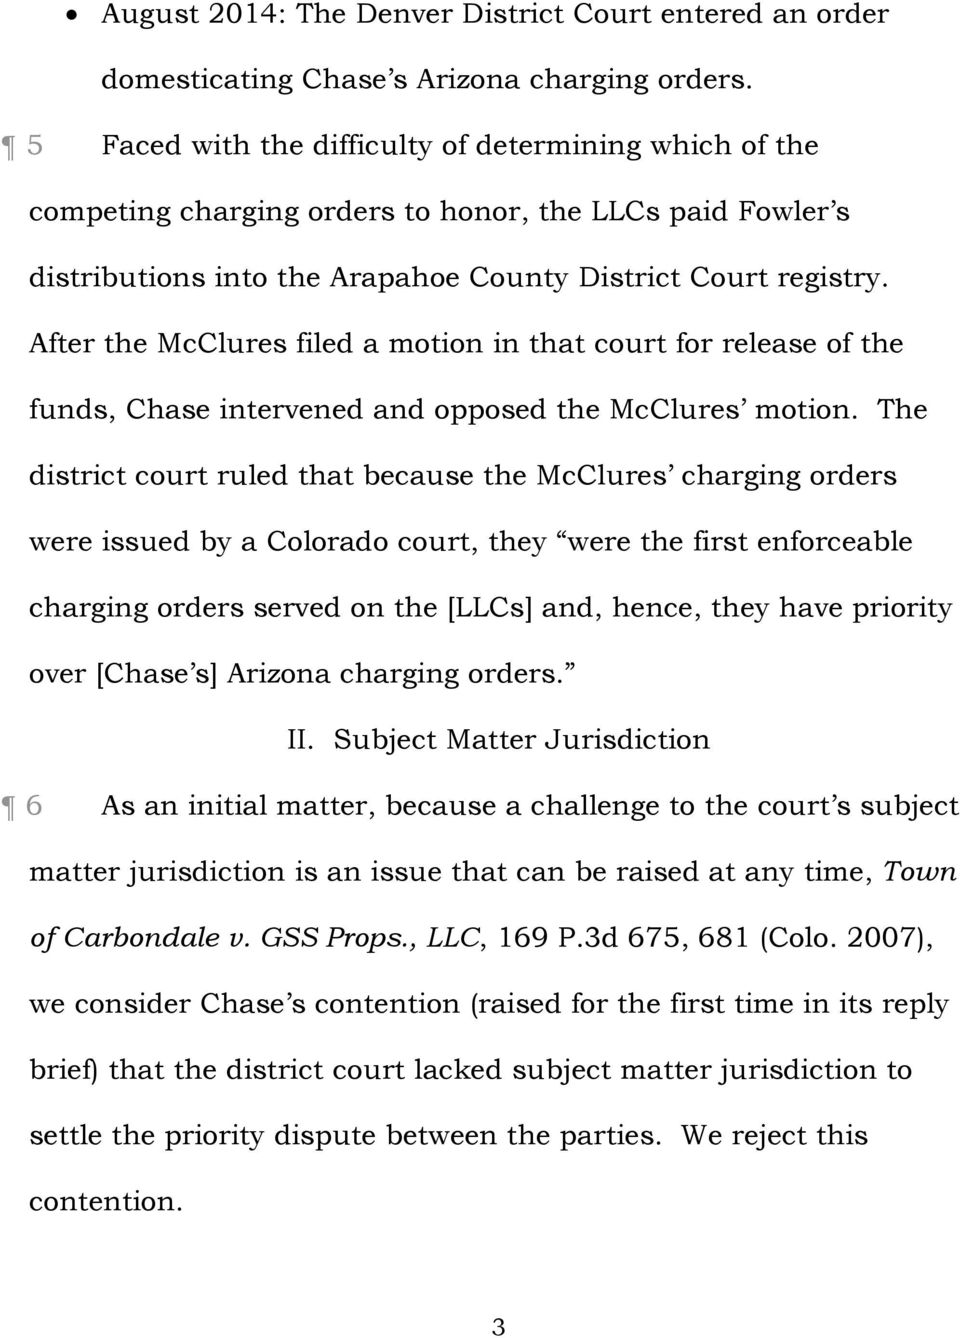 After the McClures filed a motion in that court for release of the funds, Chase intervened and opposed the McClures motion.